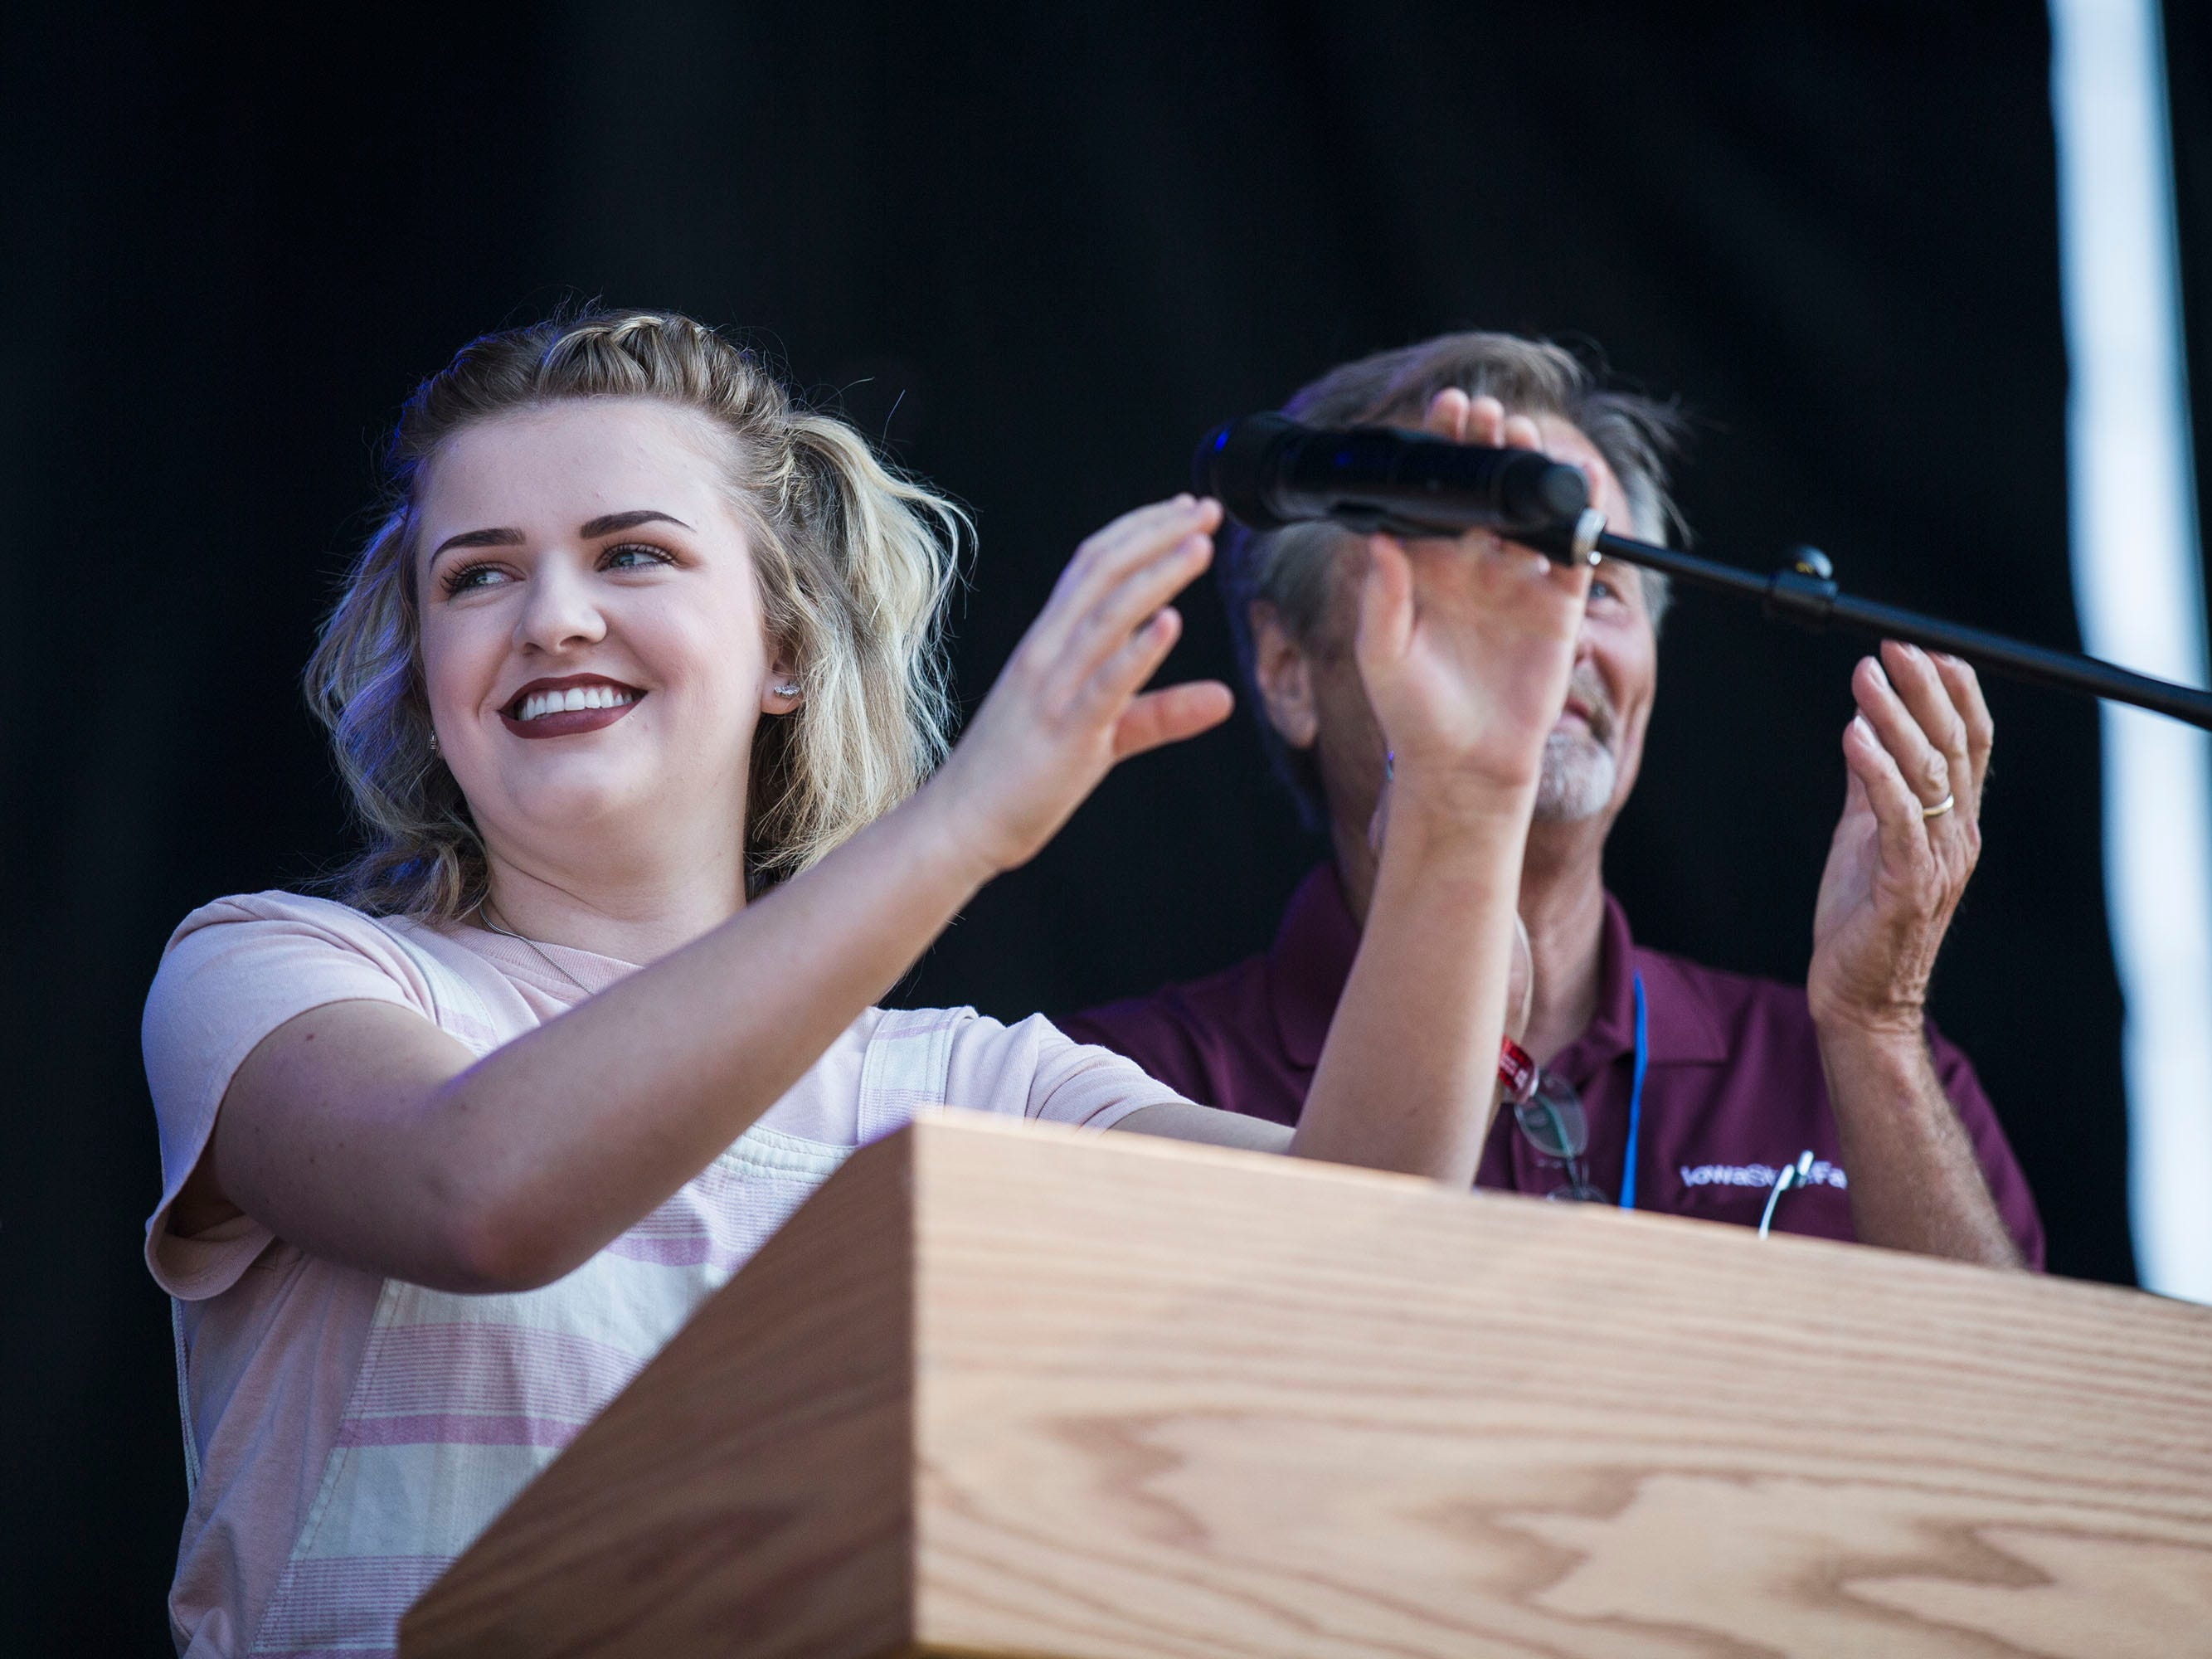 Iowa's 'American Idol' winner Maddie Poppe to appear in Des Moines this weekend